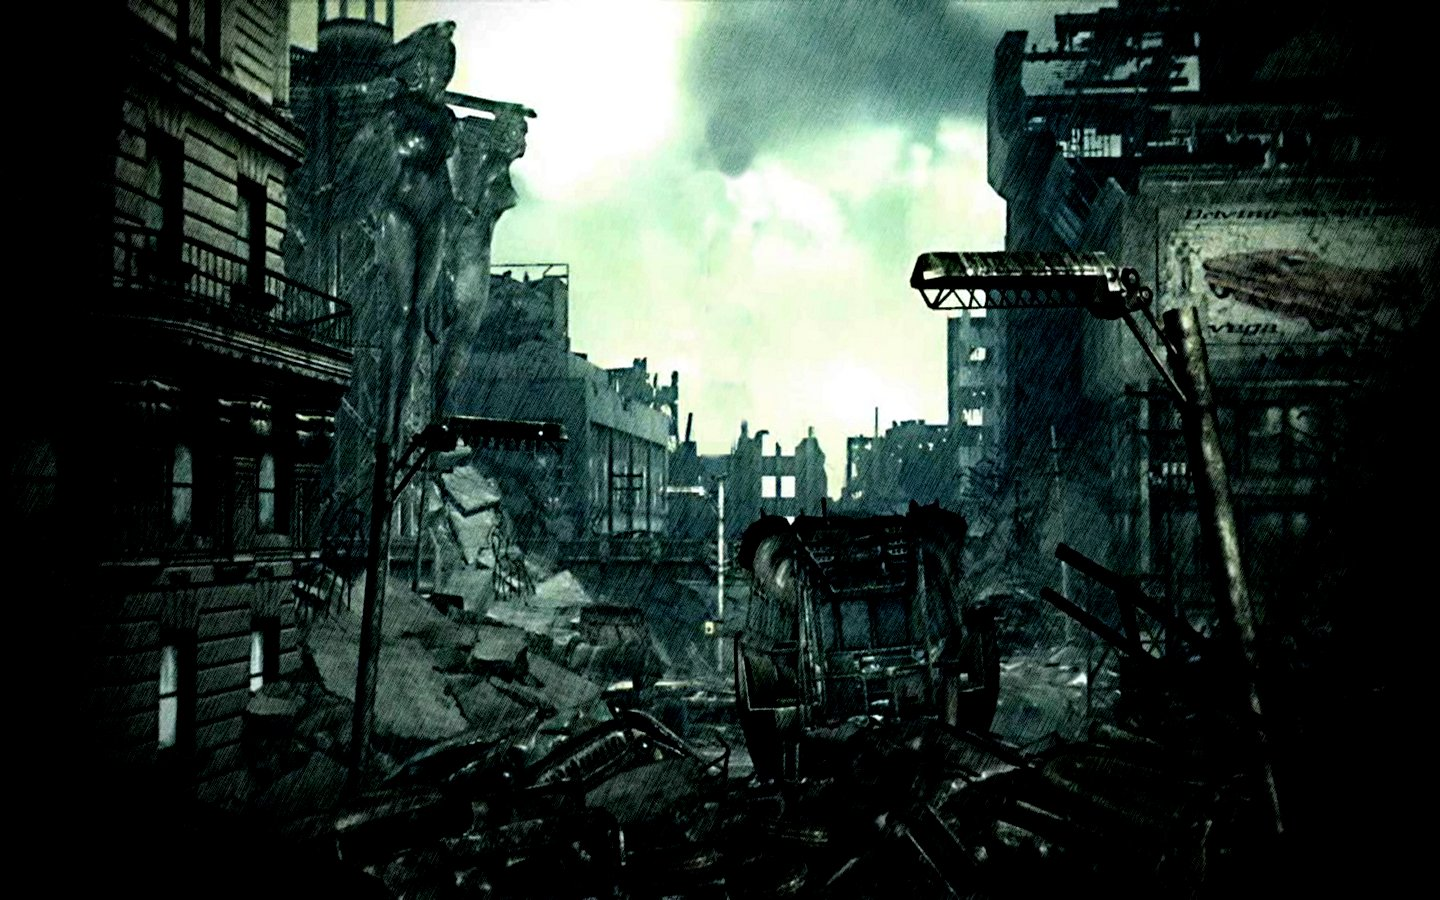 fallout city dc apocalypse destroyed